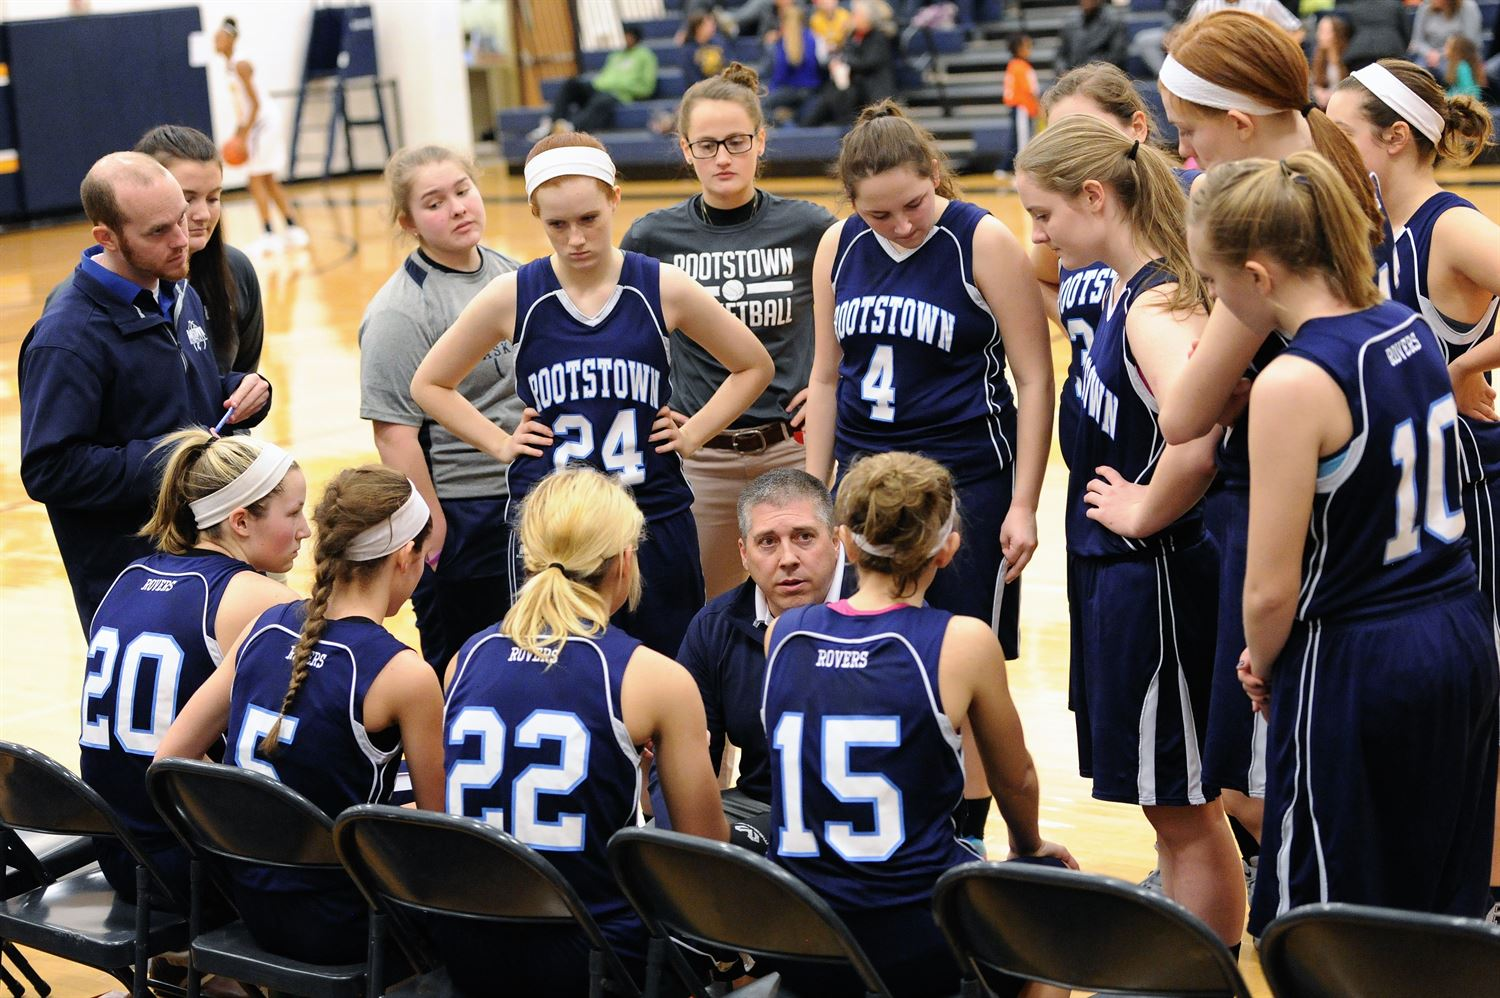 Rootstown High School - Girls' Varsity Basketball